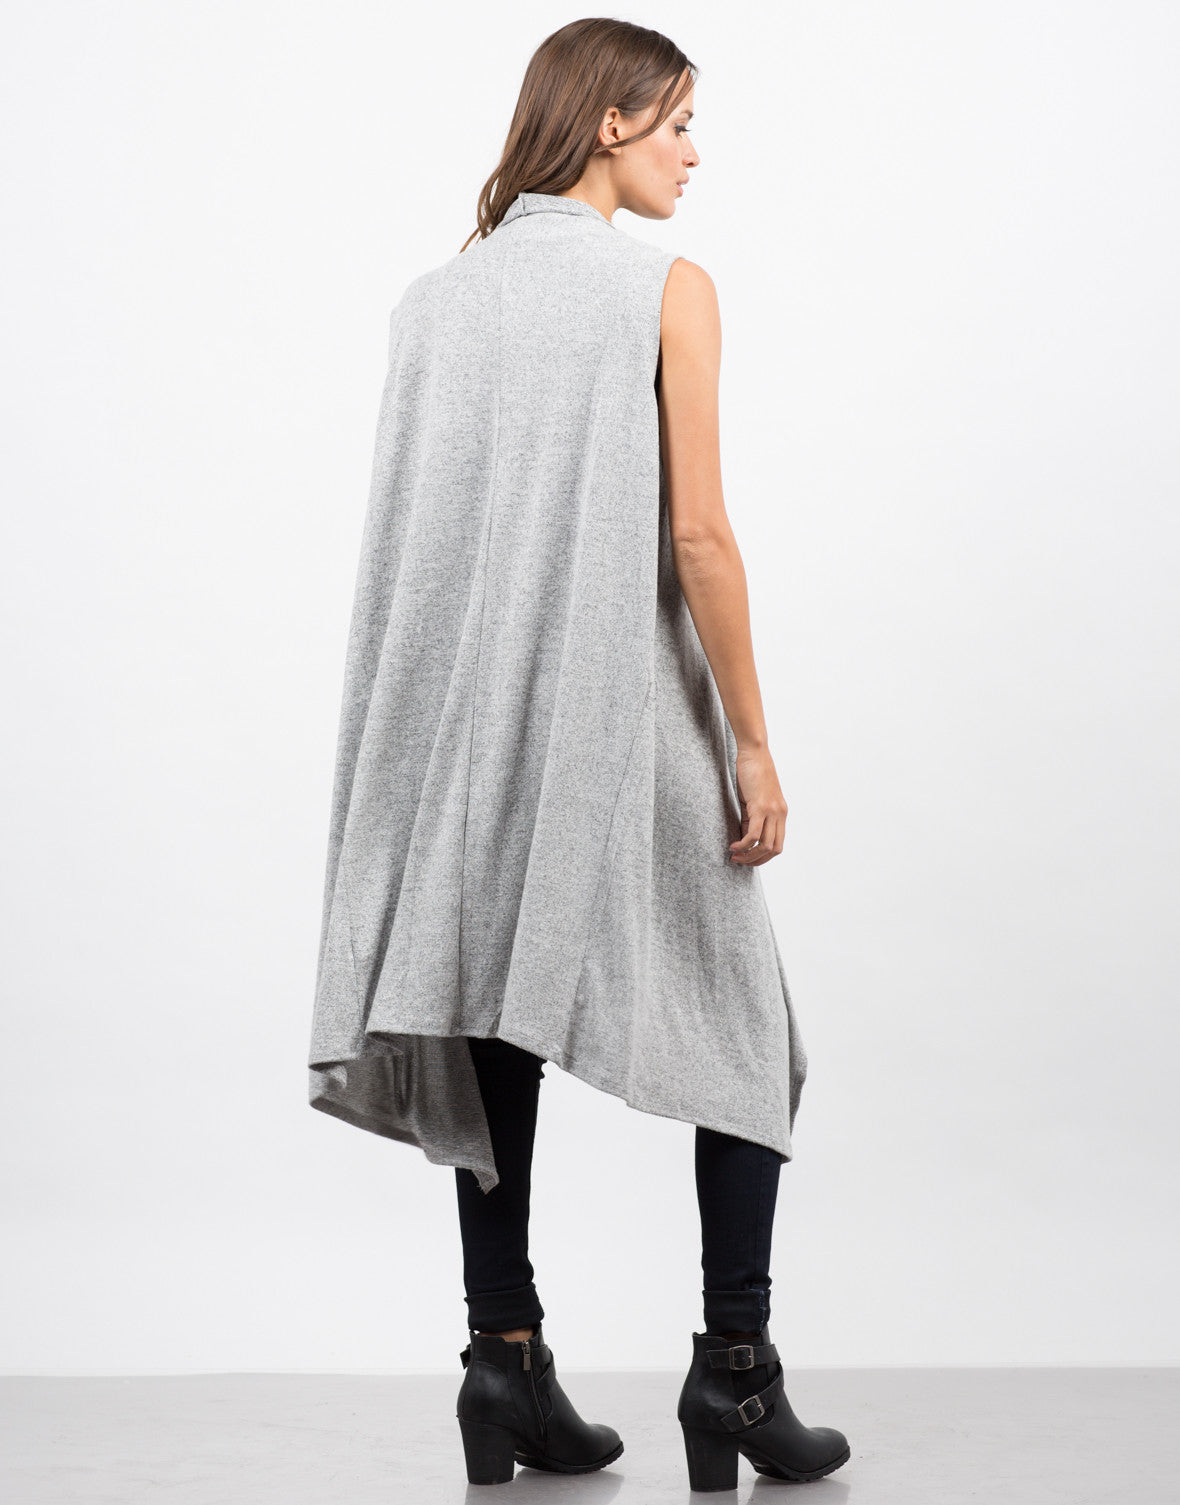 Back View of Sleeveless Drapey Open Cardigan